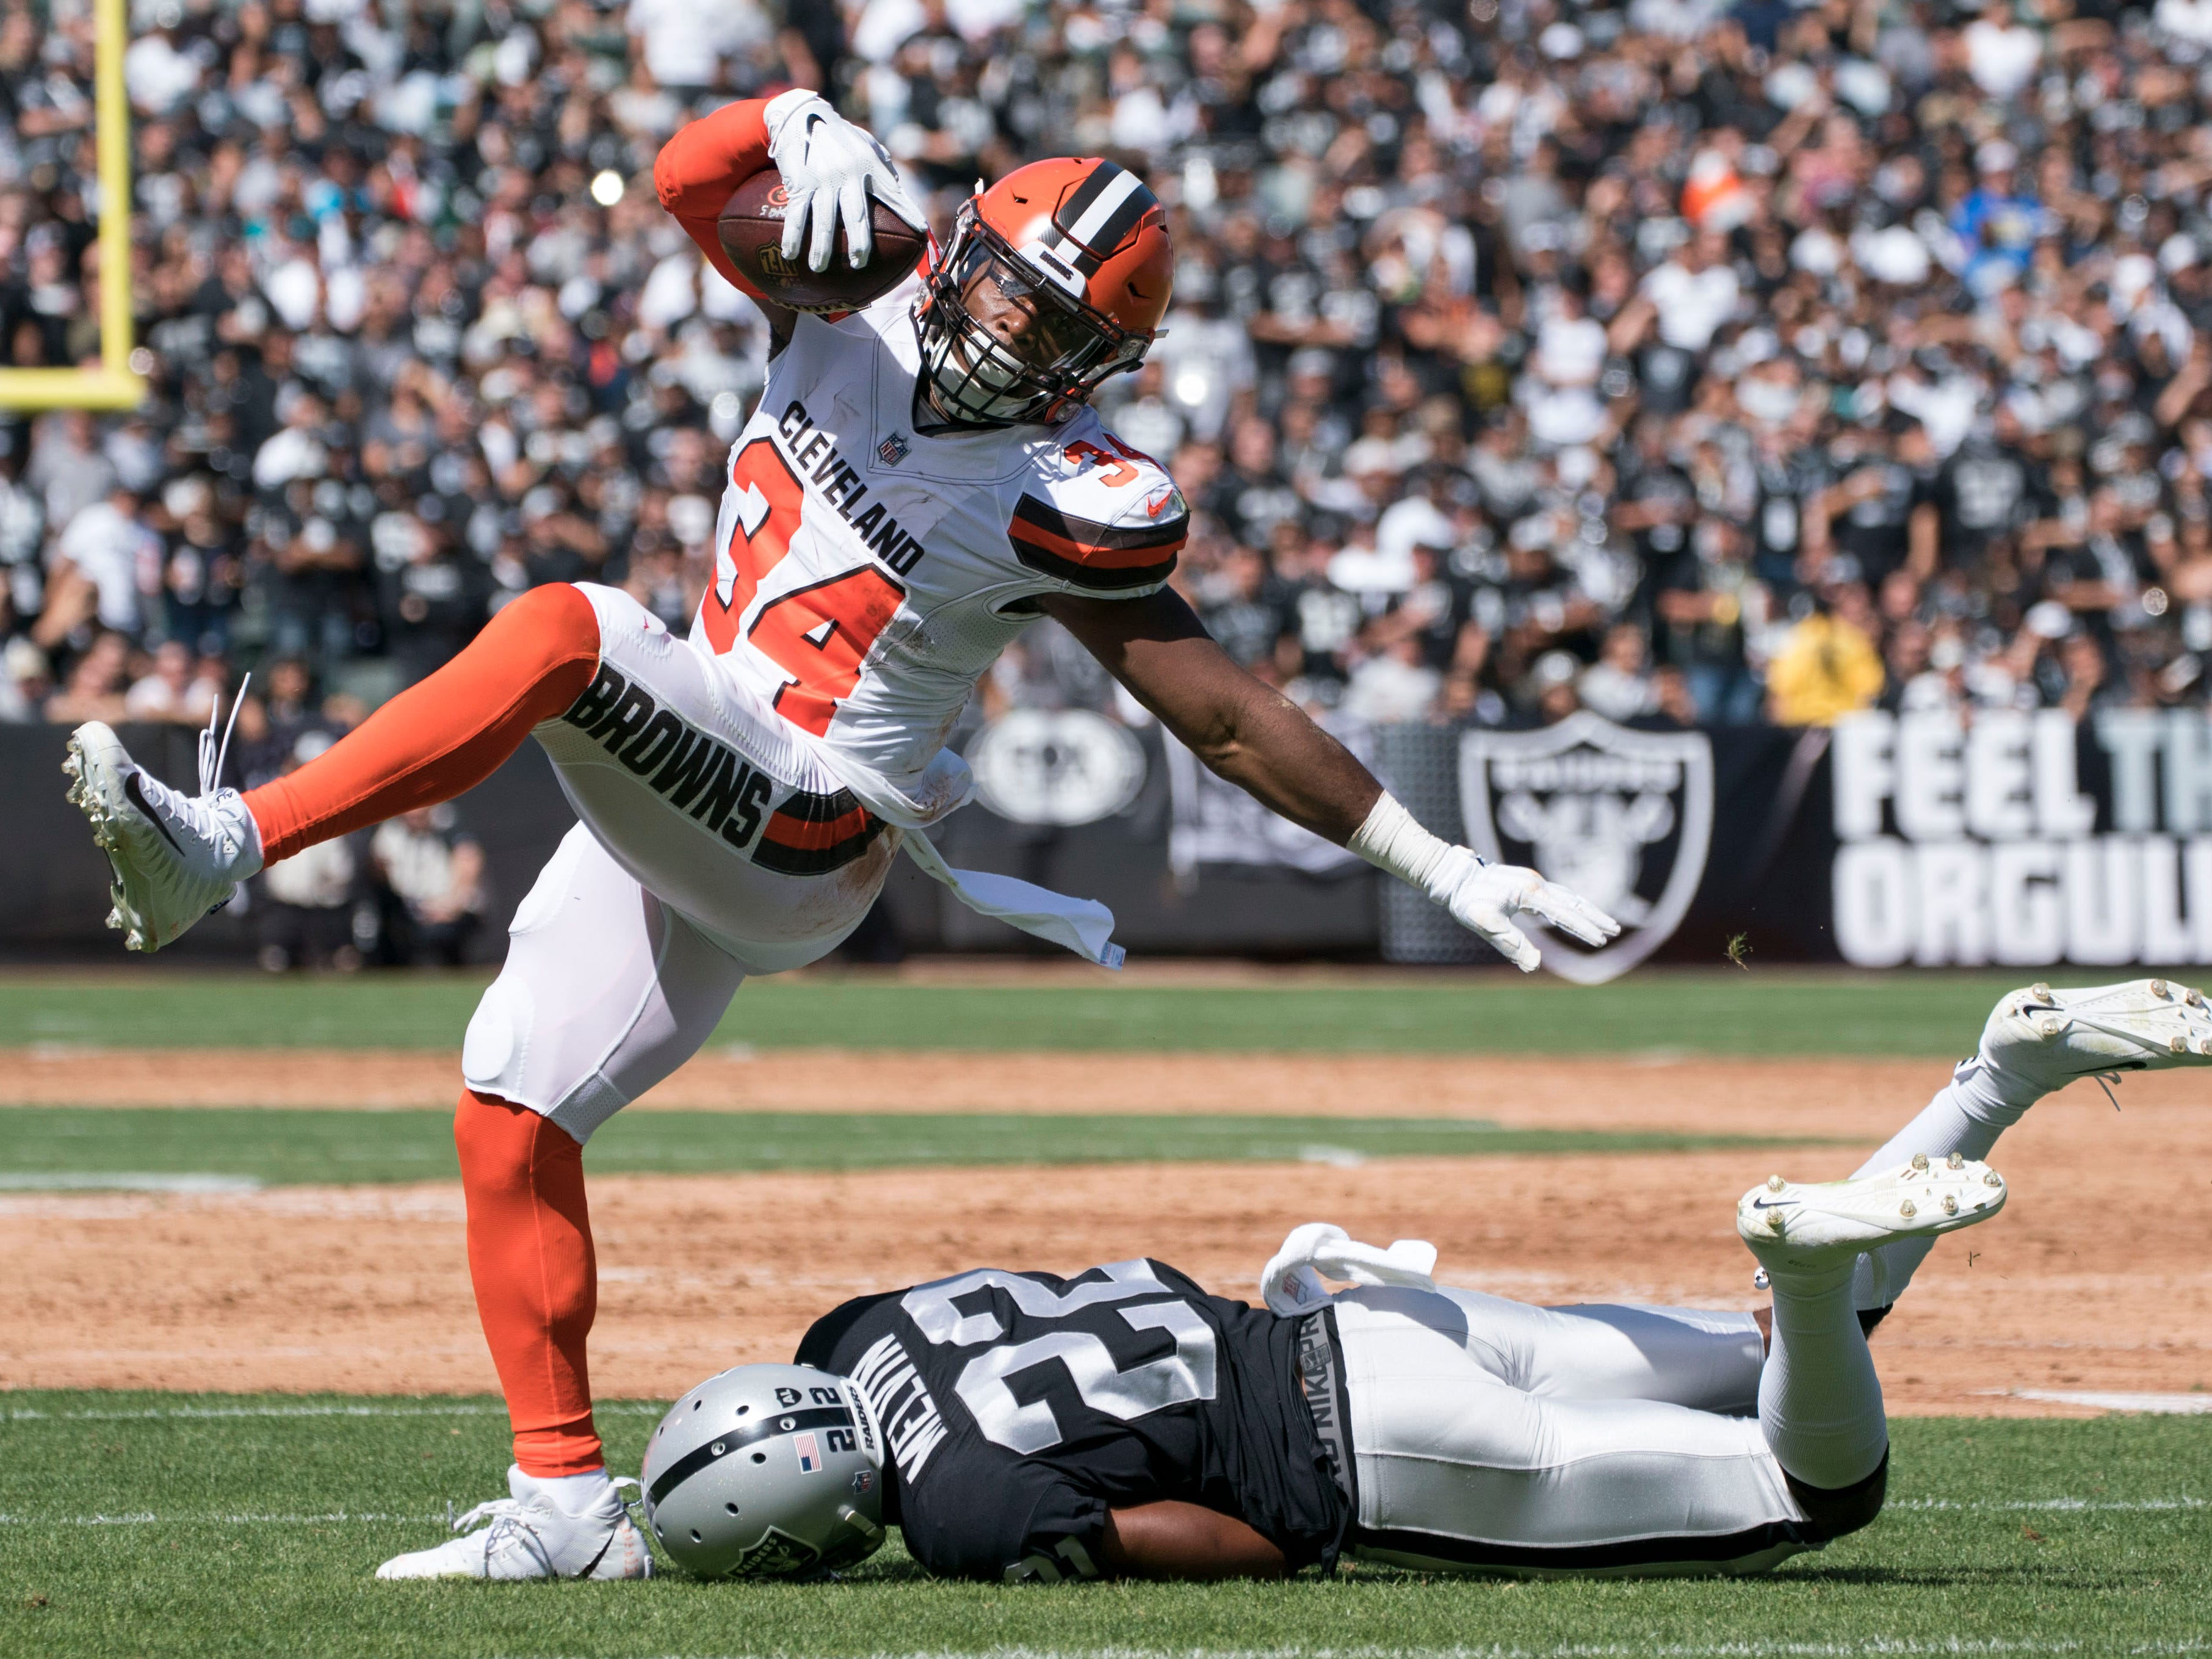 Cleveland Browns running back Carlos Hyde runs against Oakland Raiders defensive back Rashaan Melvin during the first quarter at Oakland Coliseum.